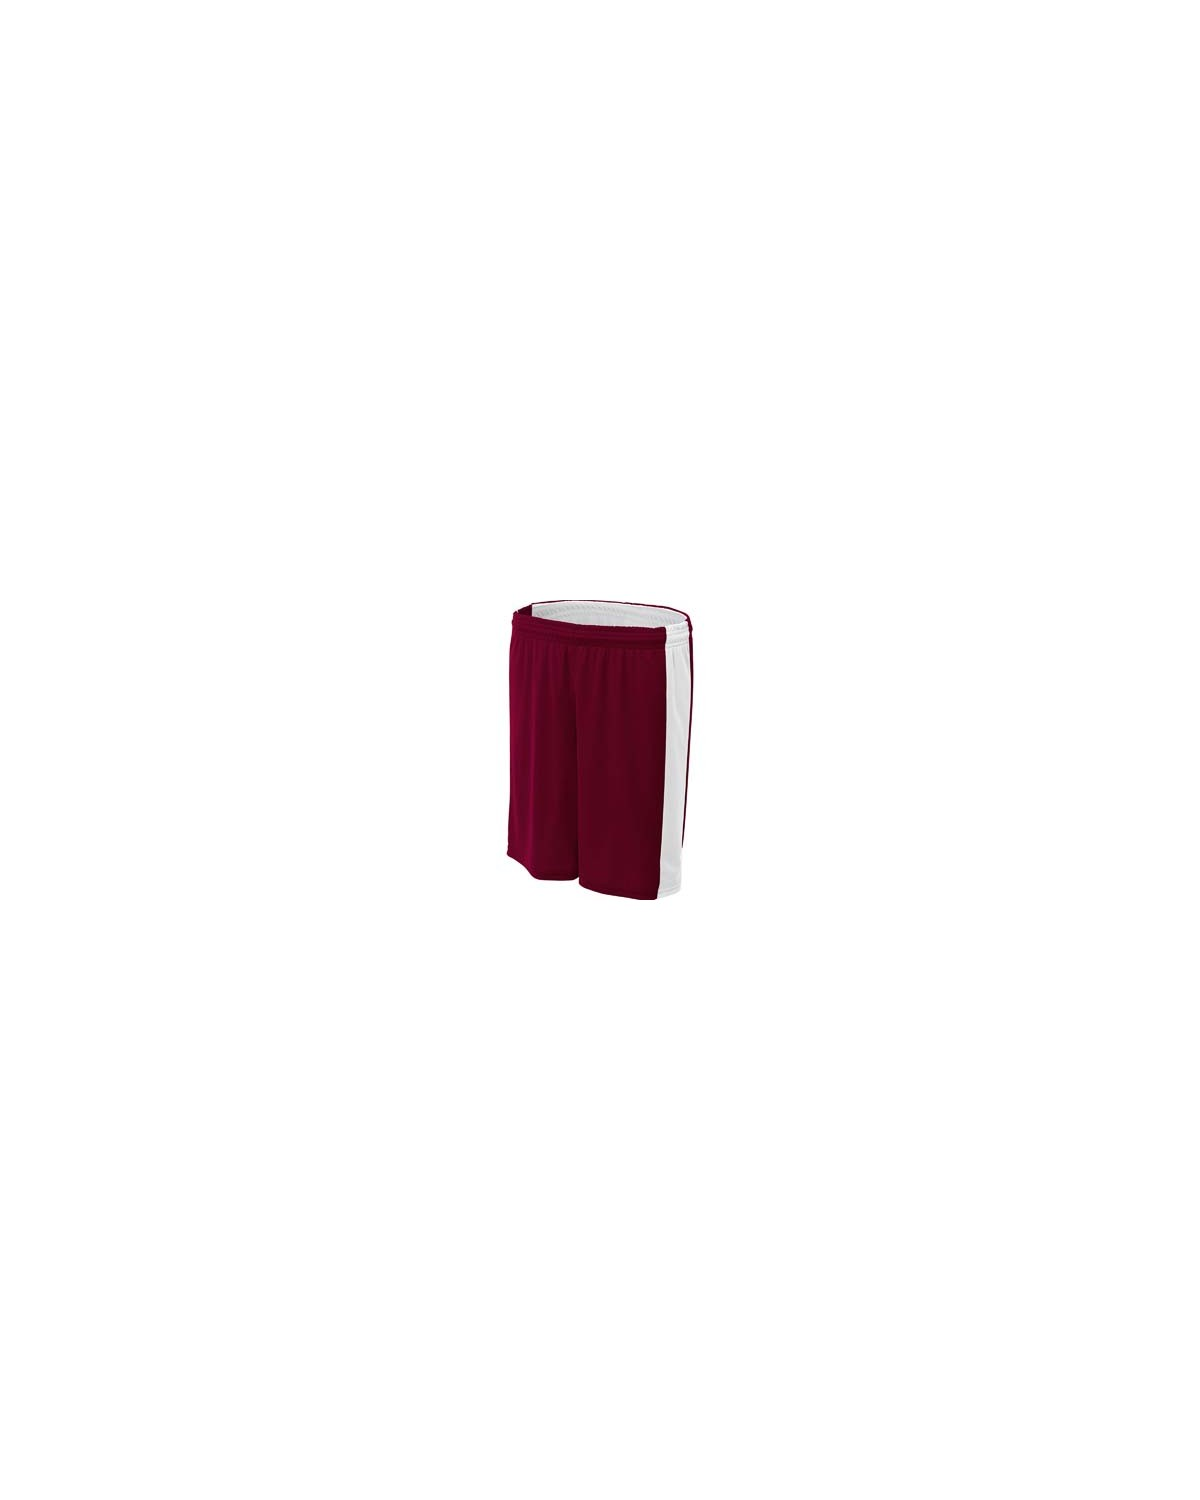 NW5284 A4 Drop Ship MAROON/WHITE